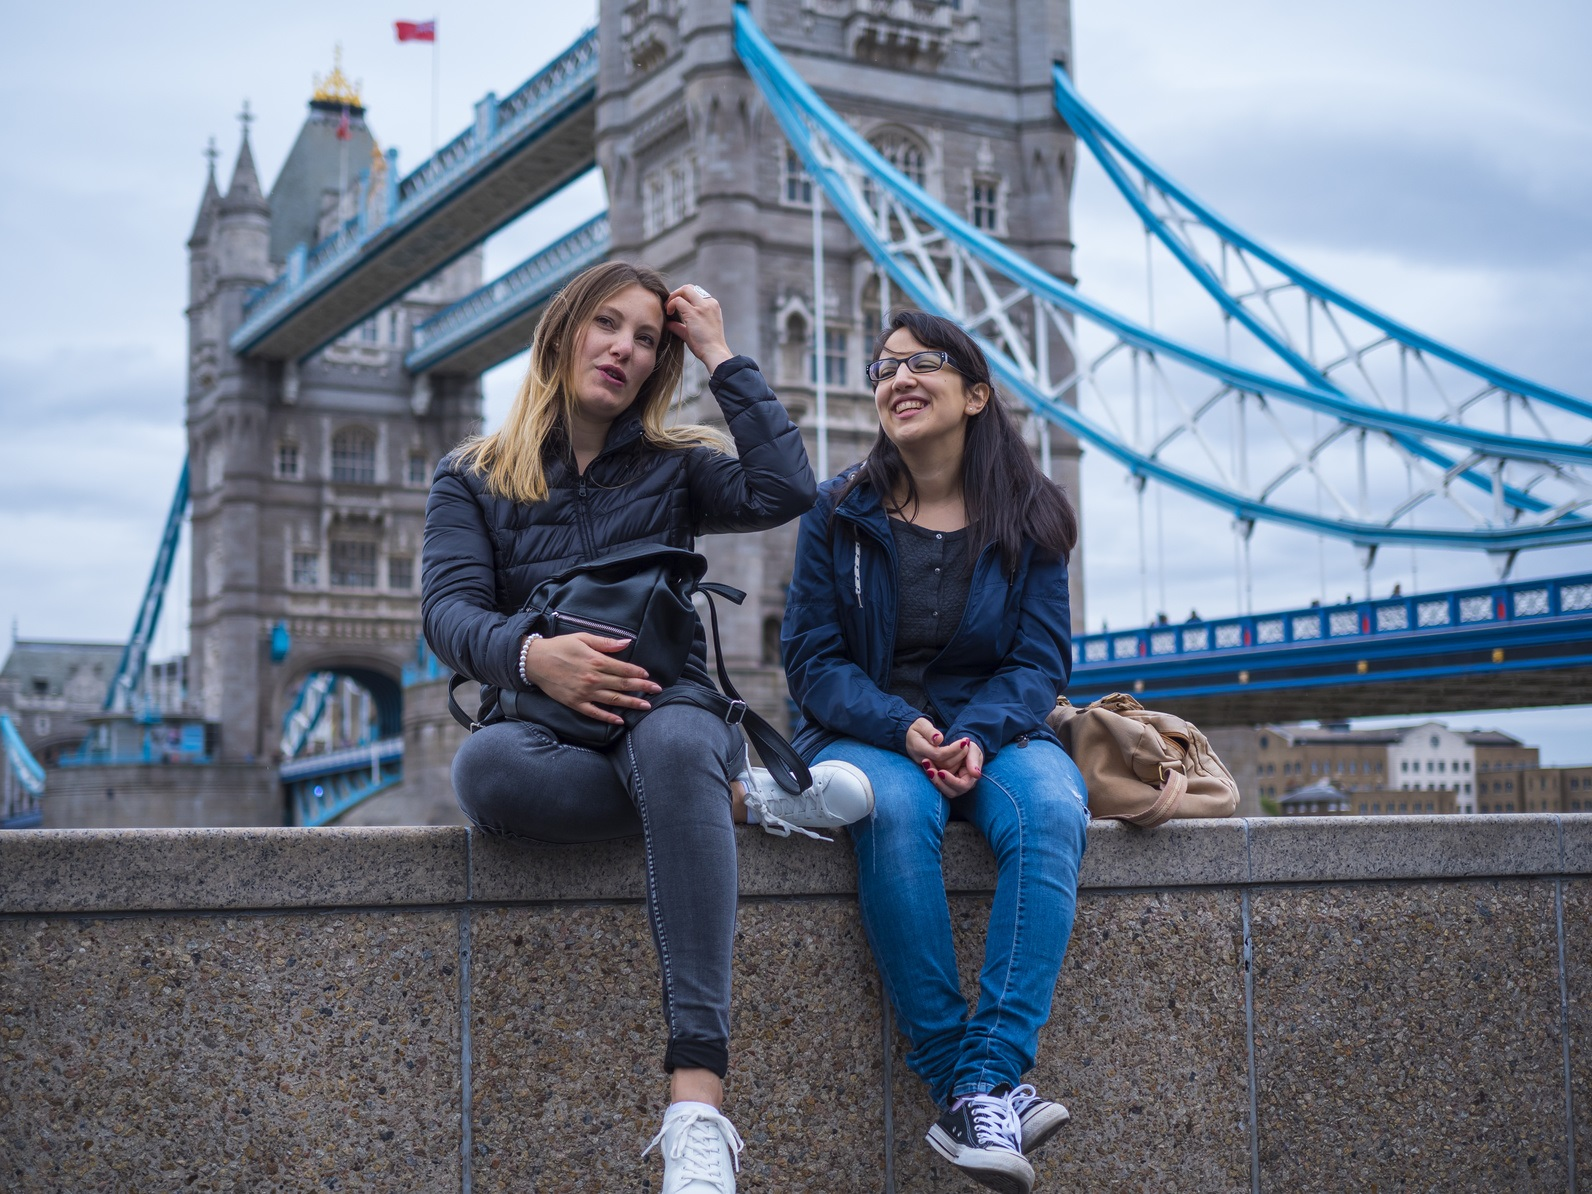 Two girls on a city trip to London - relax at the Tower Bridge